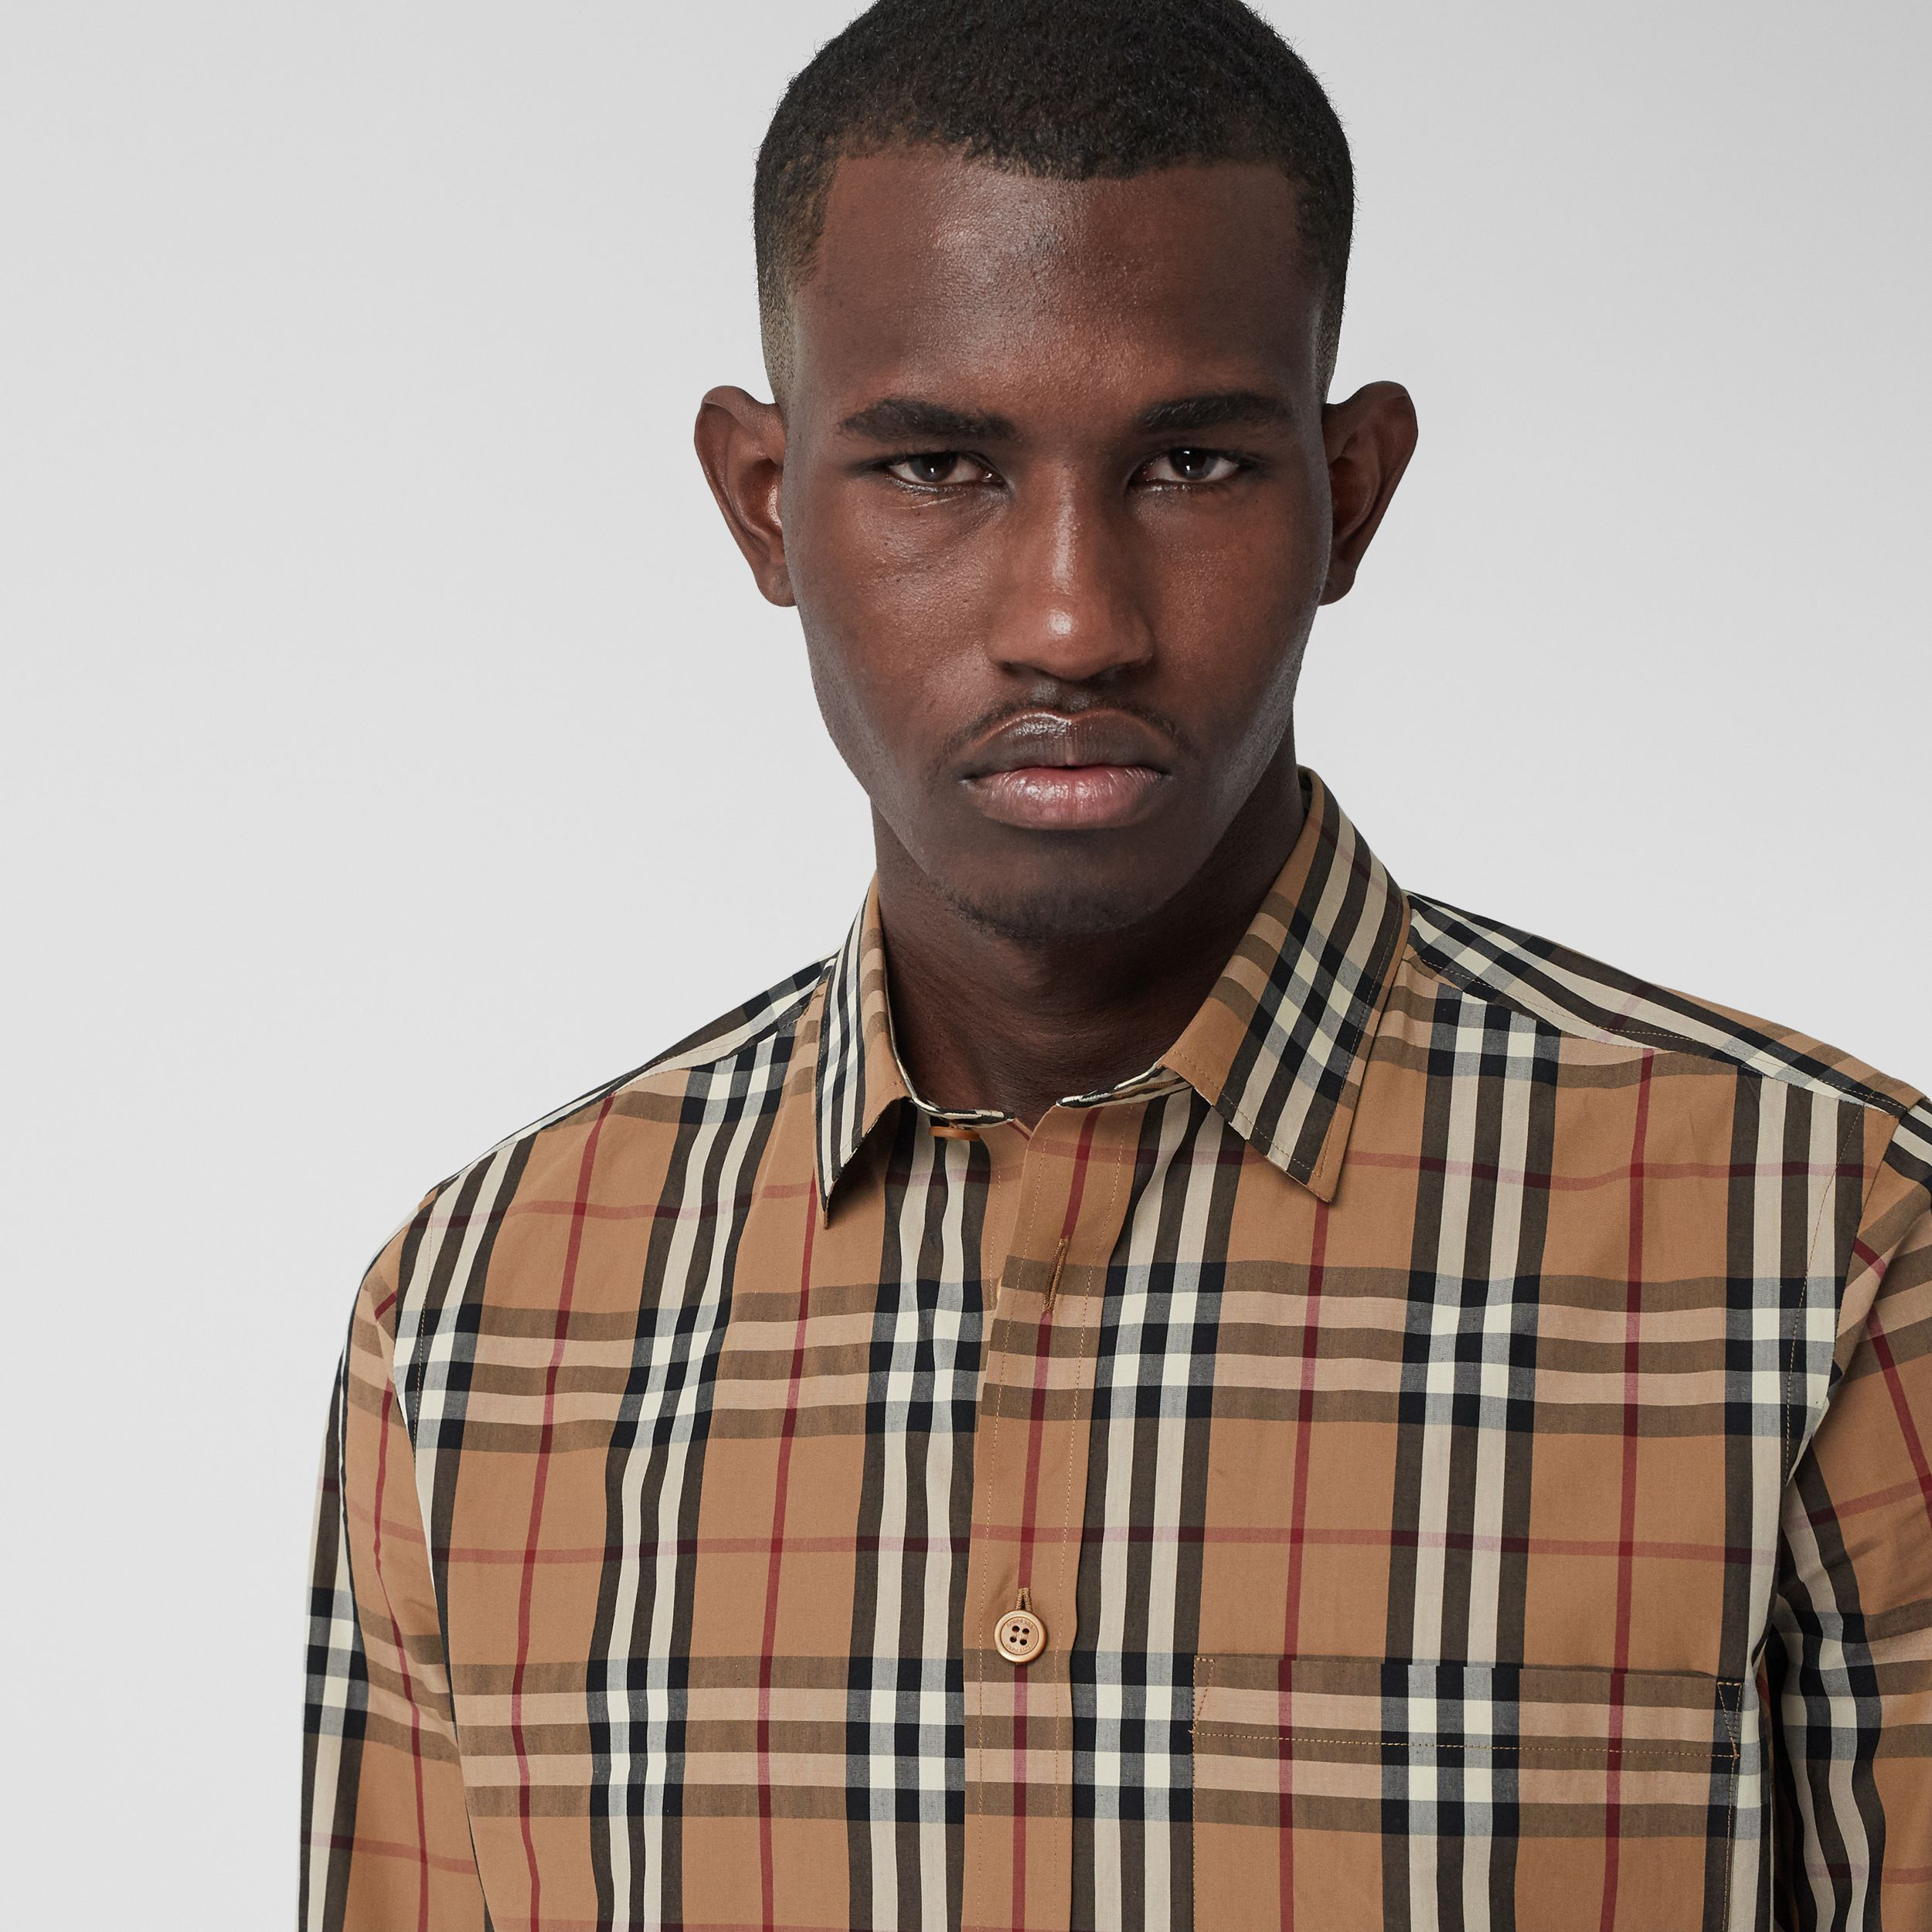 Vintage Check Cotton Poplin Shirt in Birch Brown | Burberry Australia - 2